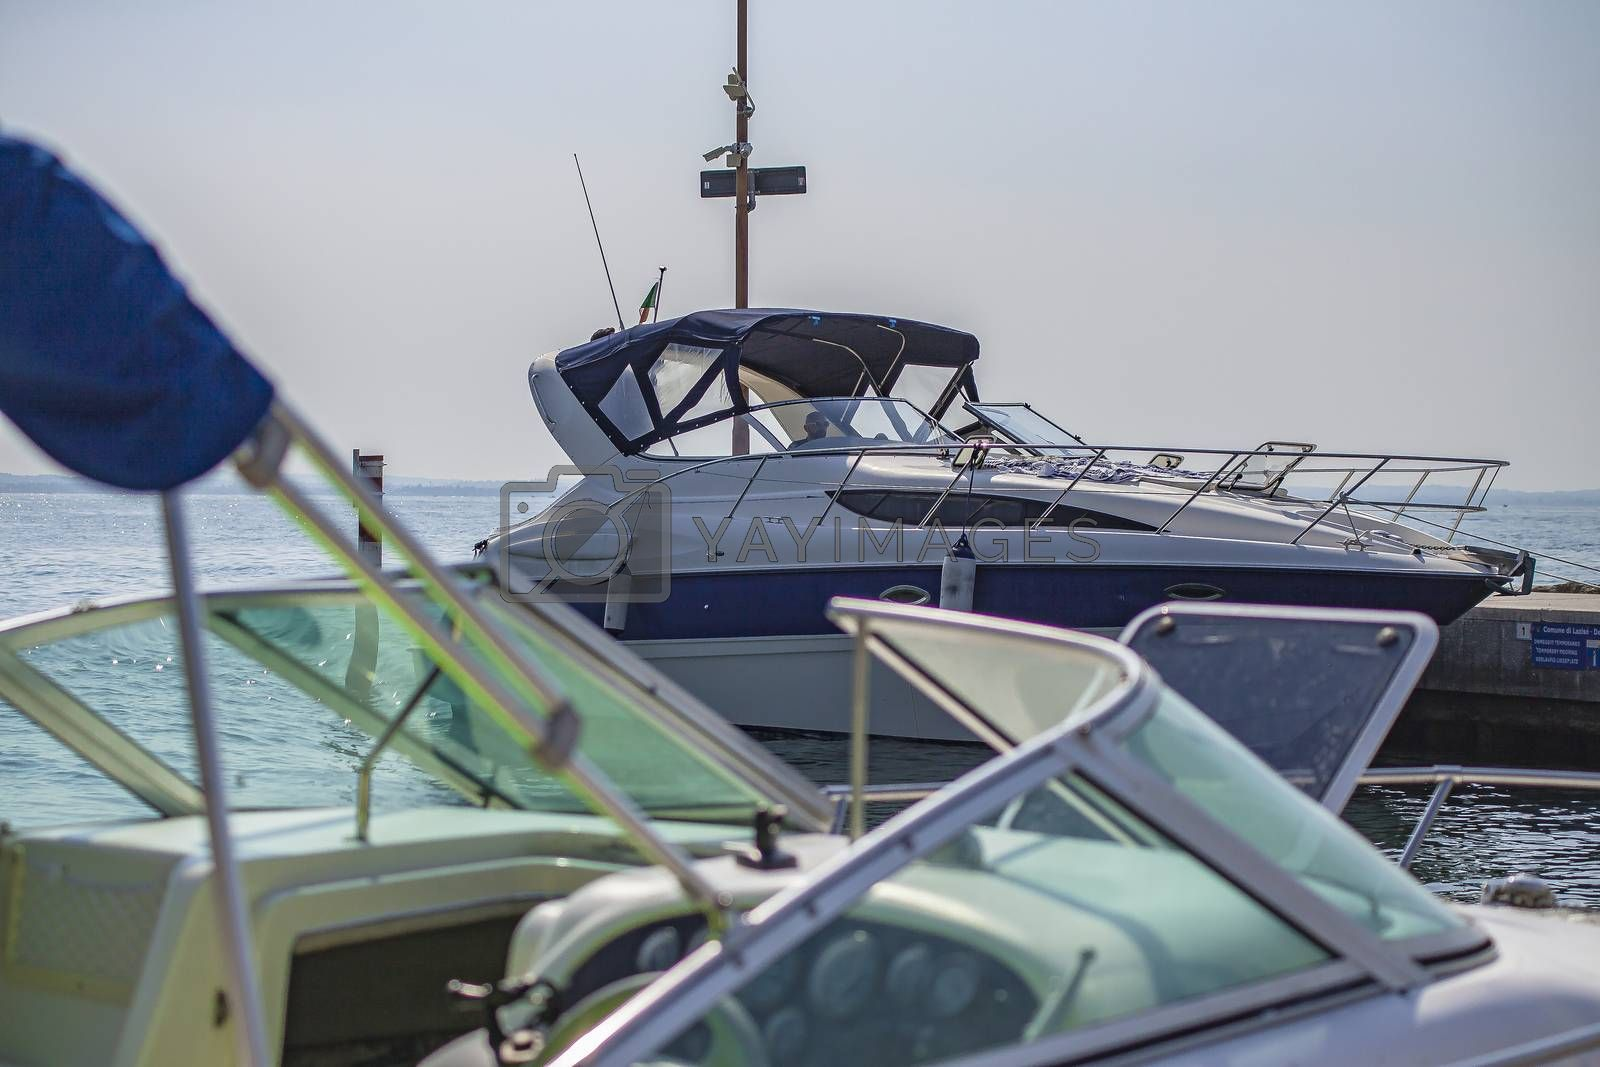 LAZISE, ITALY 16 SEPTEMBER 2020: Luxury Boats detail